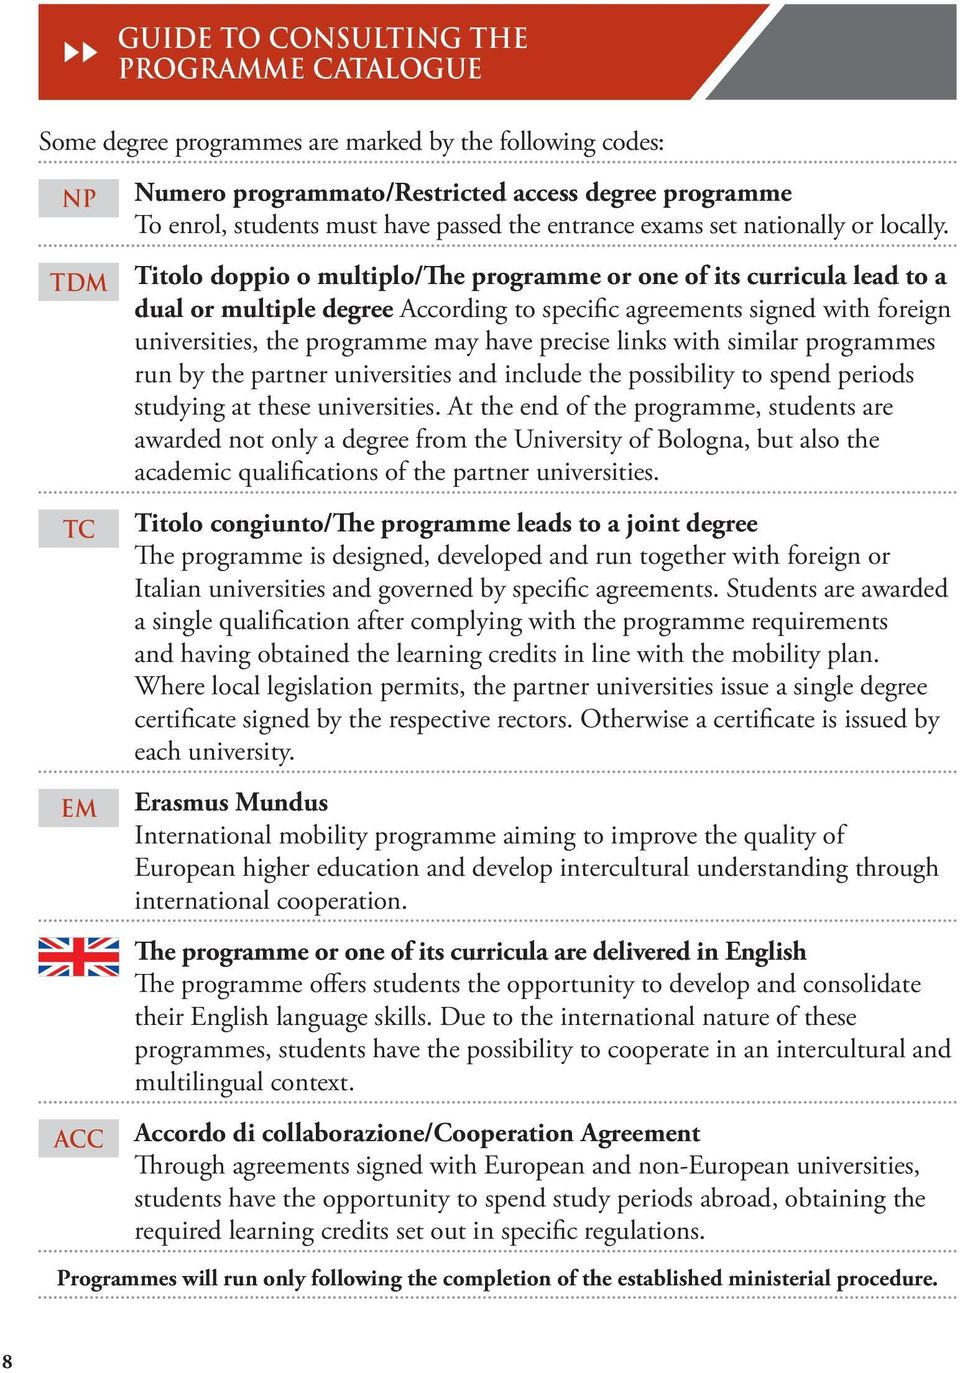 TDM Titolo doppio o multiplo/the programme or one of its curricula lead to a dual or multiple degree According to specific agreements signed with foreign universities, the programme may have precise